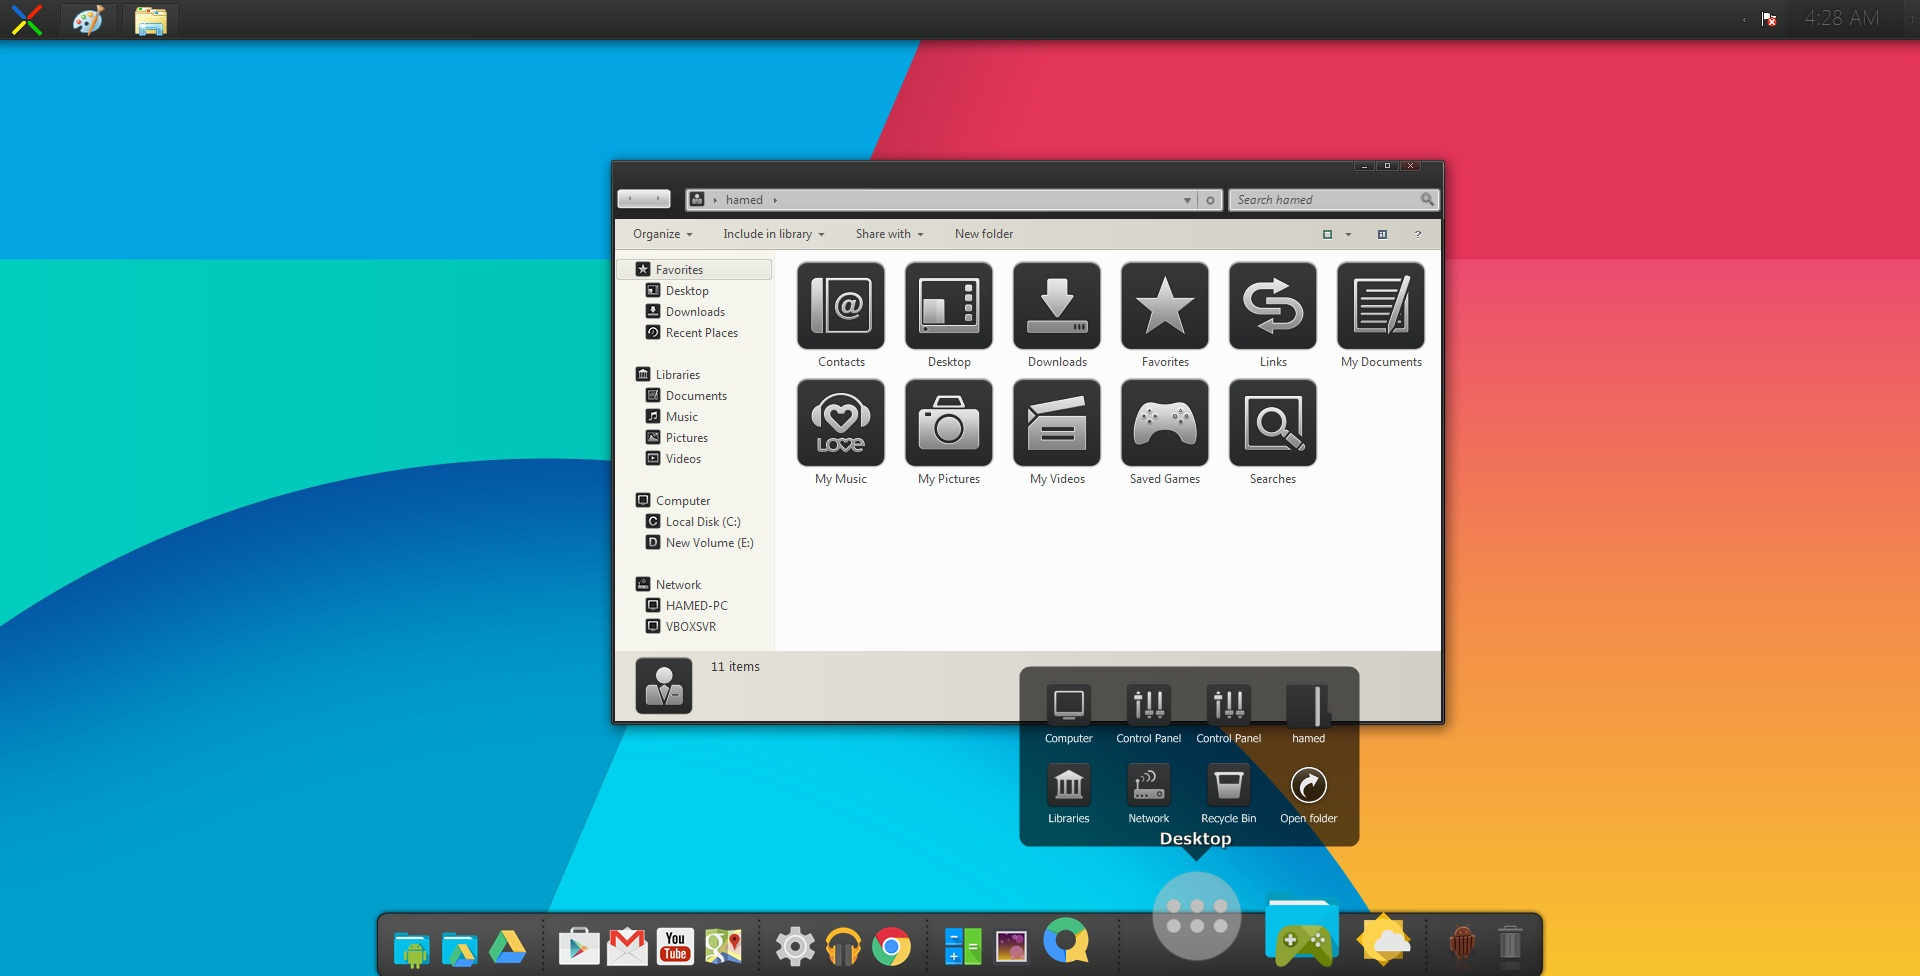 Android Kitkat SkinPack 2.0 for Win8/8.1/7 released